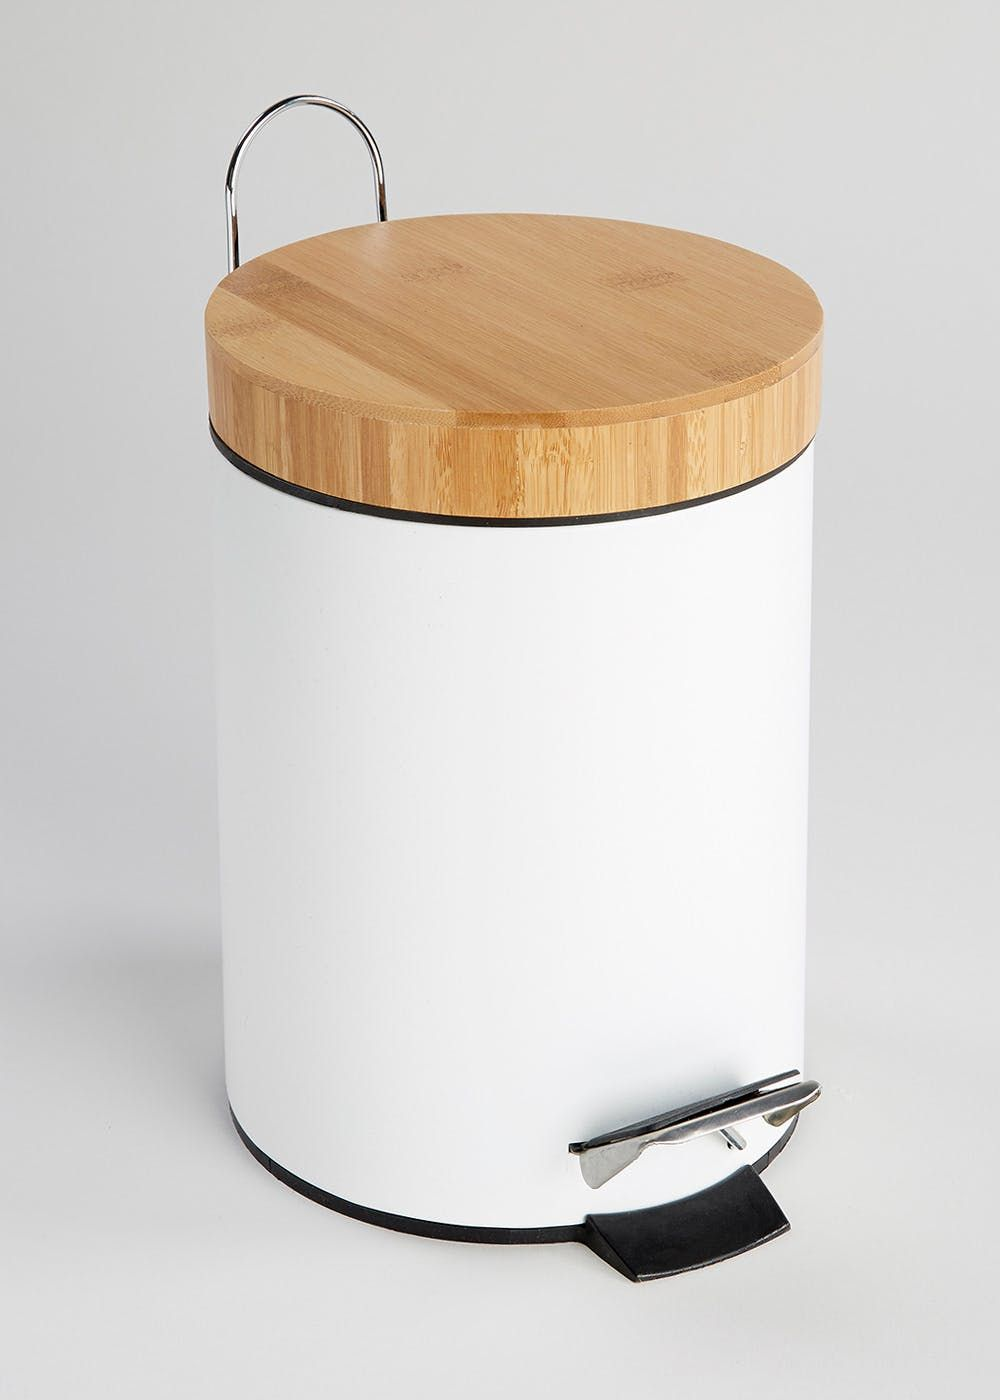 Add Texture To Your Bathroom With This Metal Bin In White A Bamboo Lid Featuring Foot Pedal And Plastic Insert For Easy Use Dimensions 25cm X 17cm